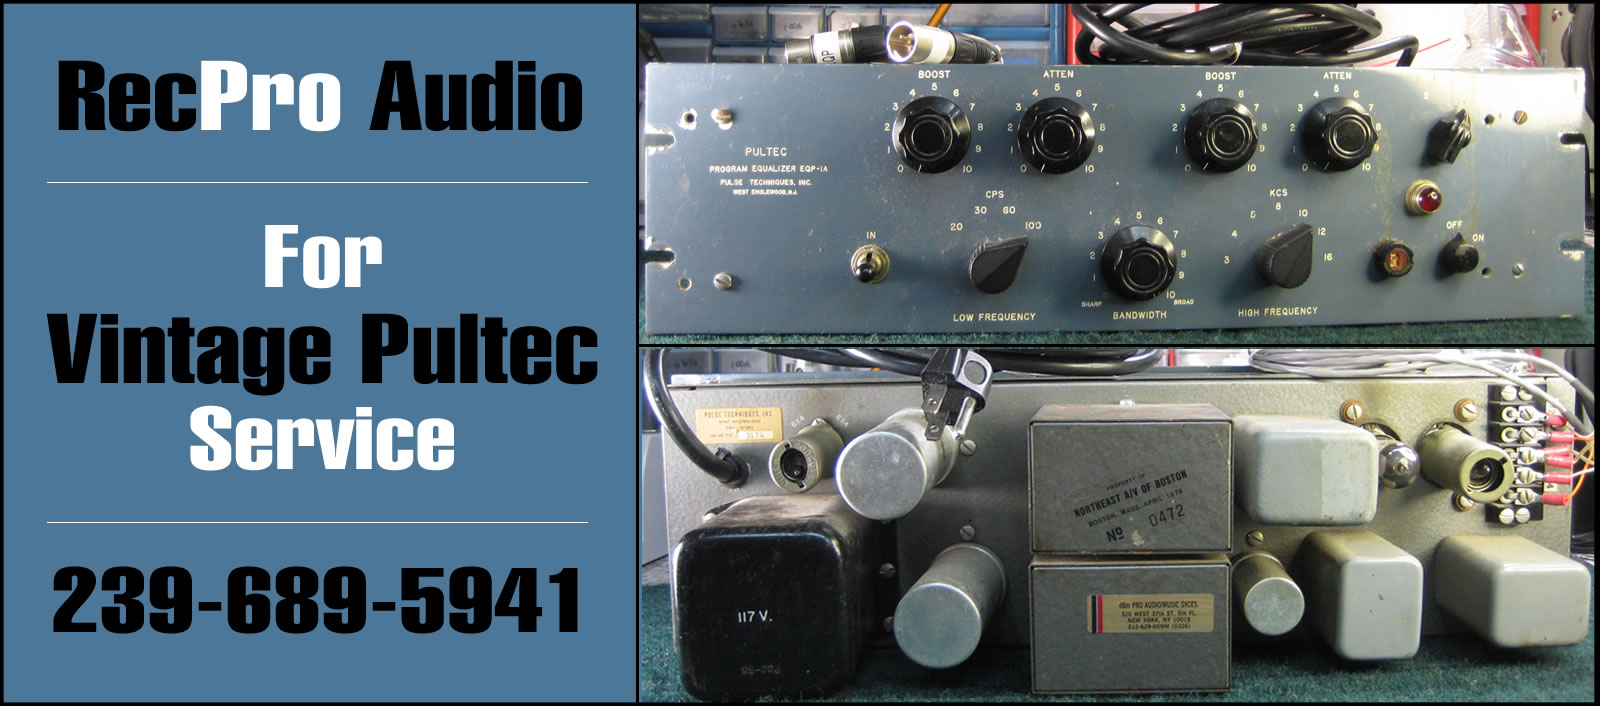 Vintage Pultec Repair and Service